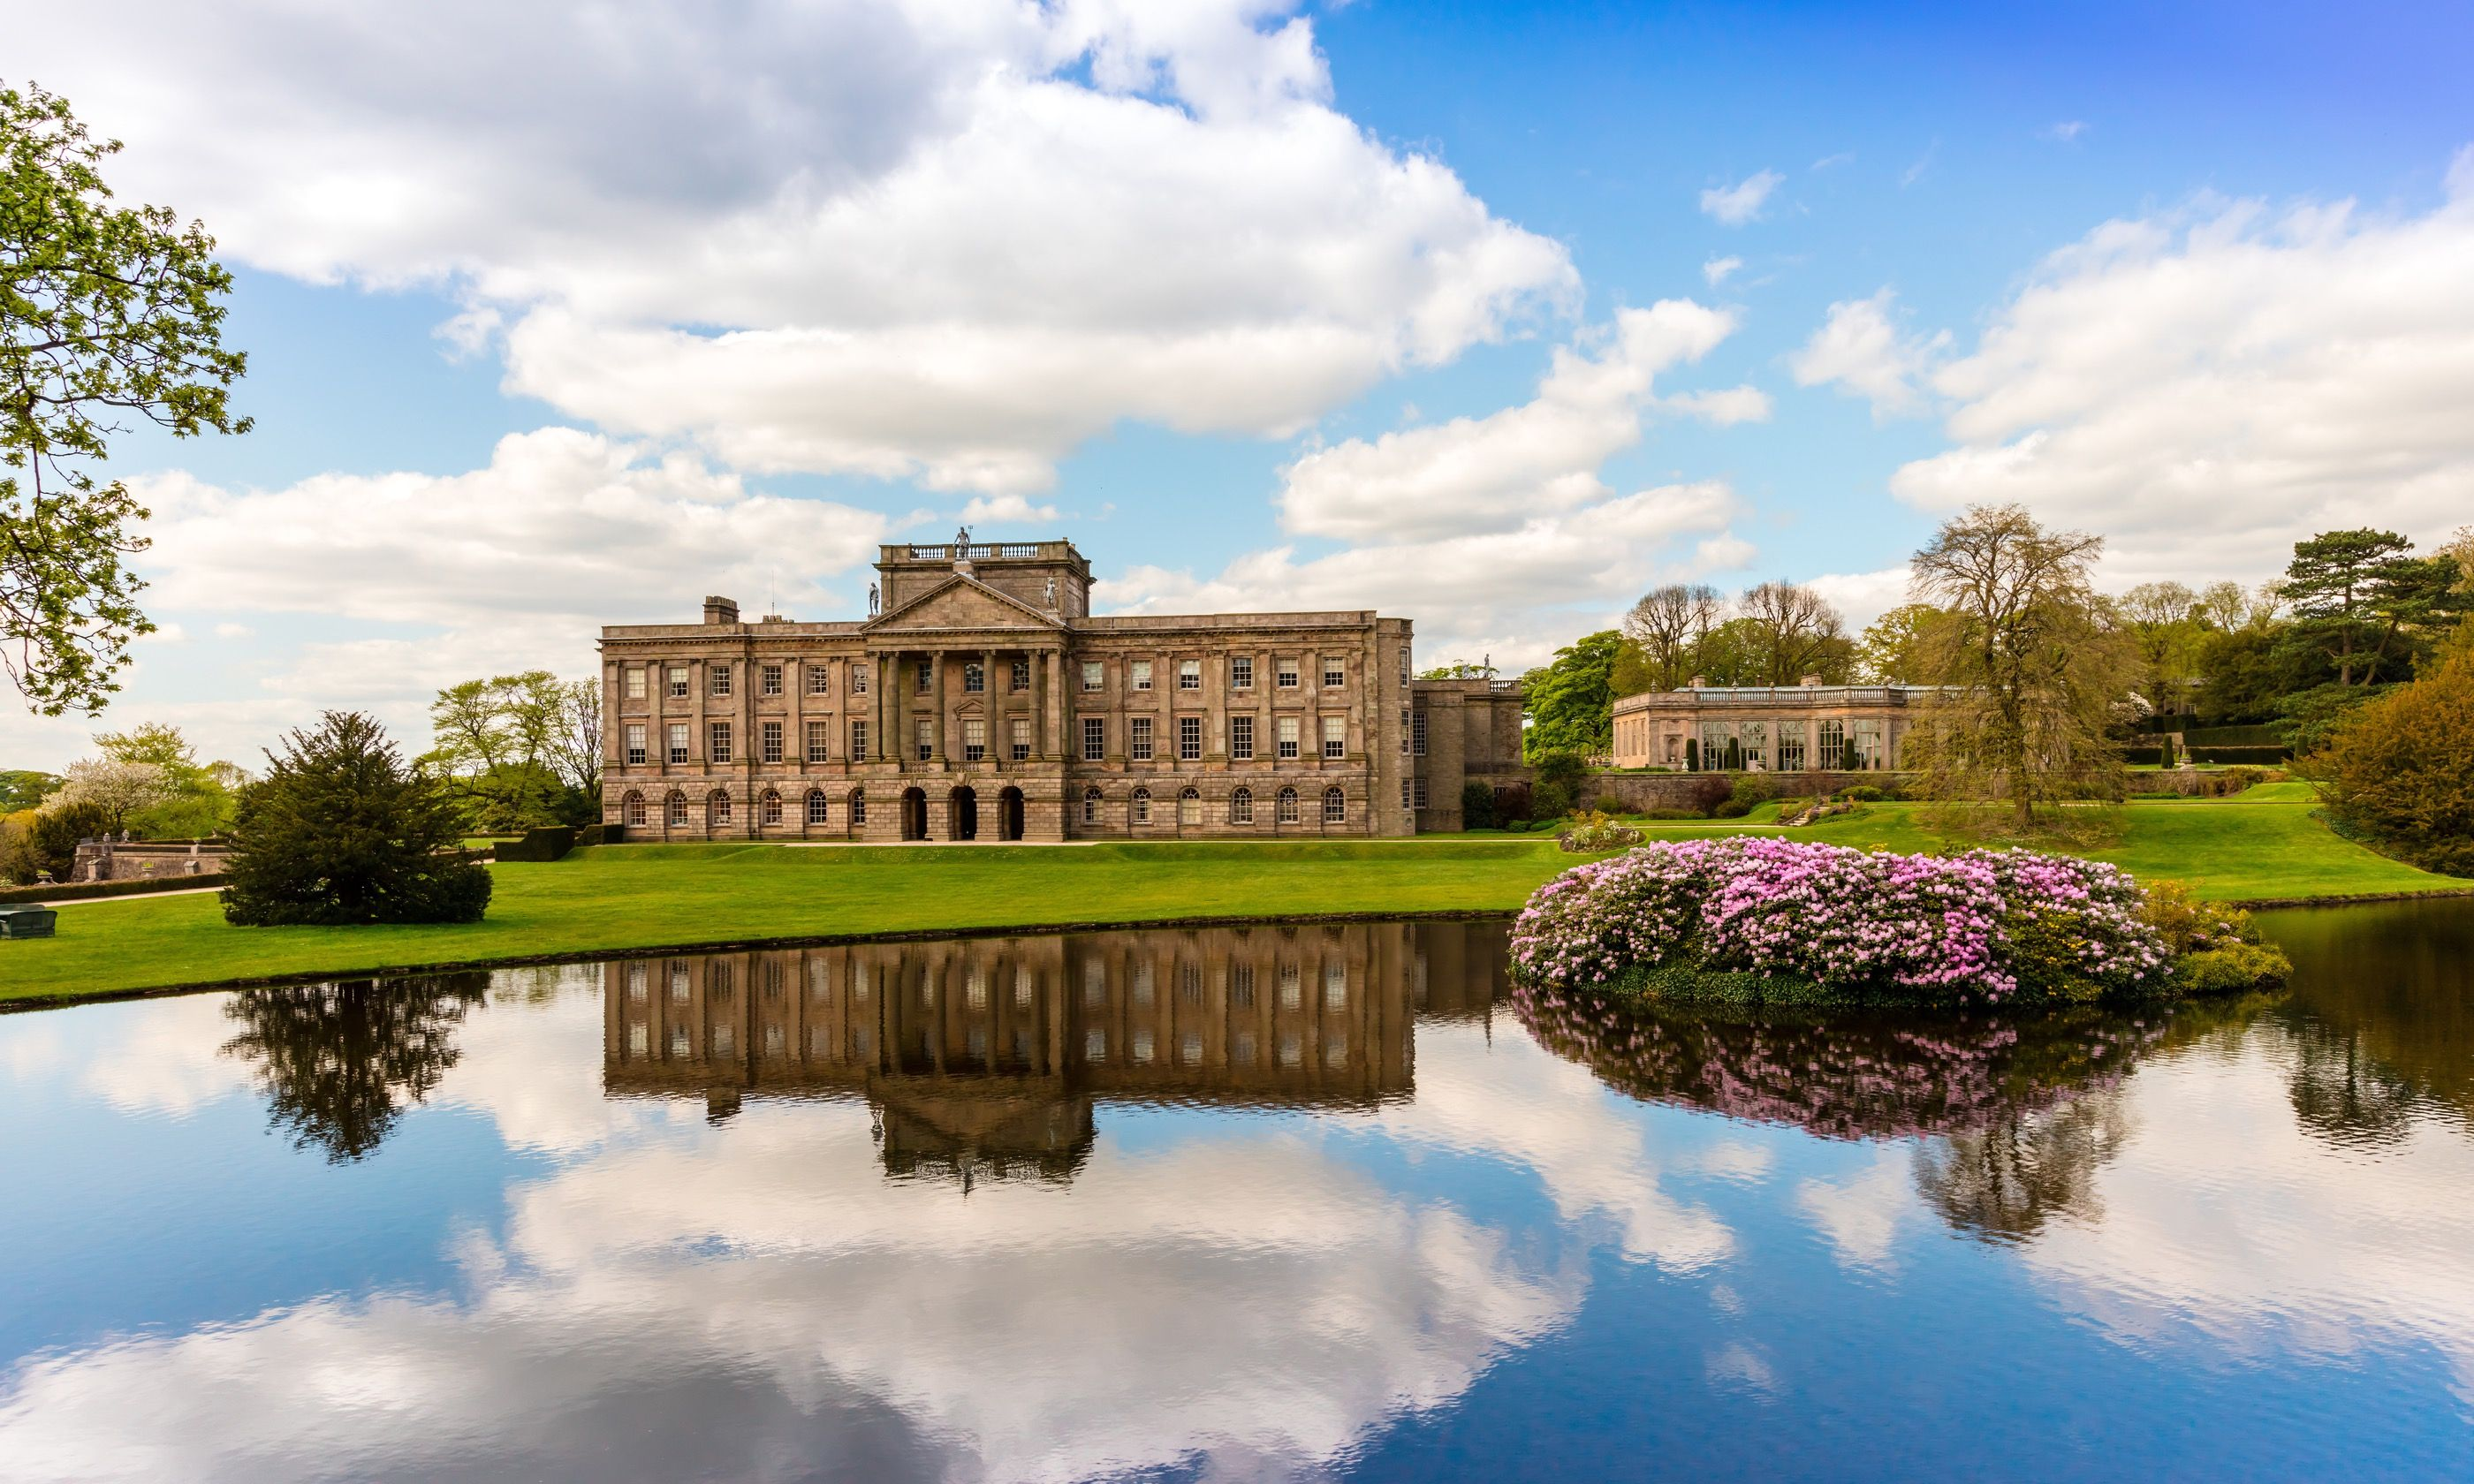 Lyme Park. Colin Firth not shown (Dreamstime)